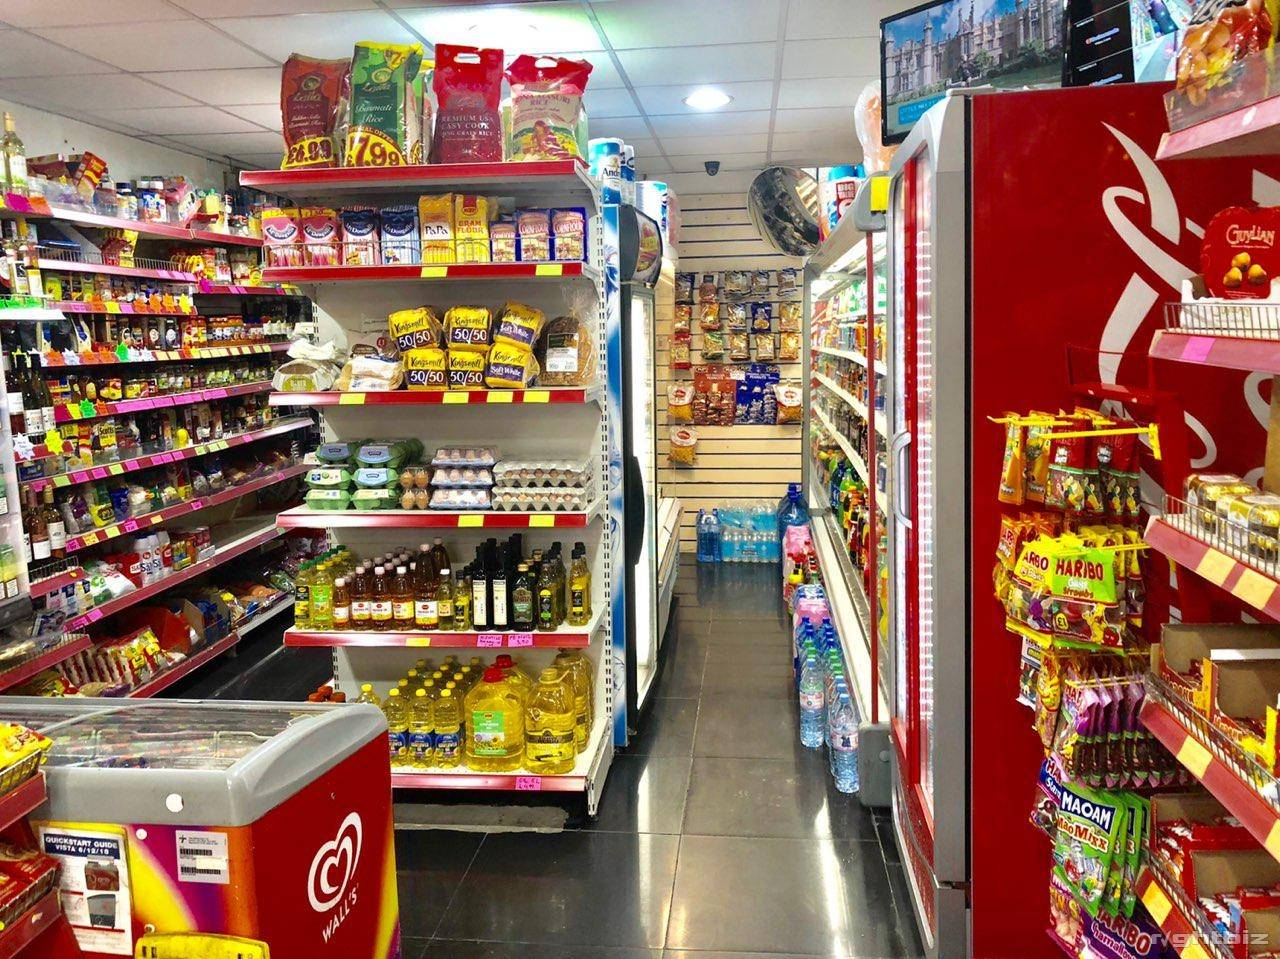 Off License & Grocery for Sale in Goodmayes Ilford IG3 9UN - Image 7